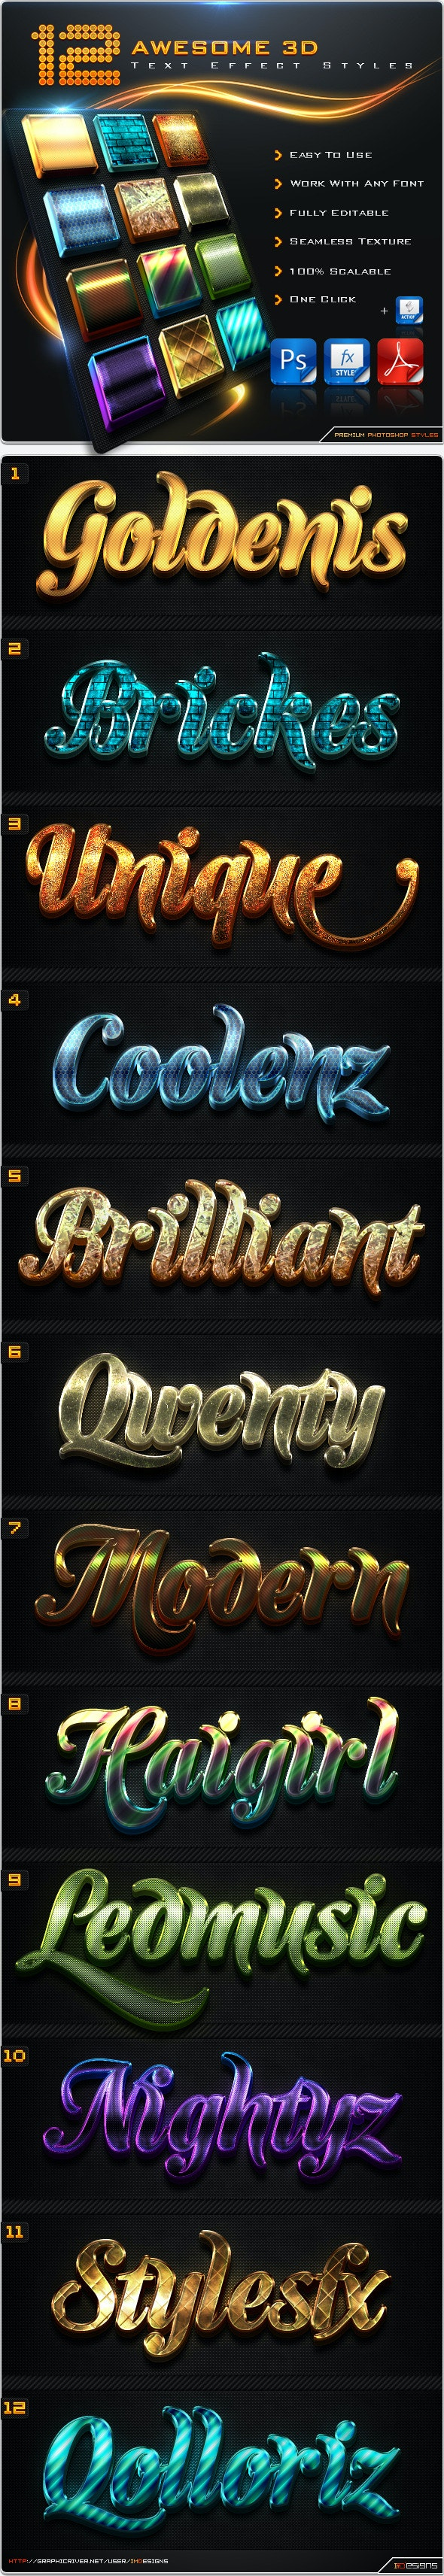 12 Awesome 3D Text Effect Styles + Actions - Text Effects Styles